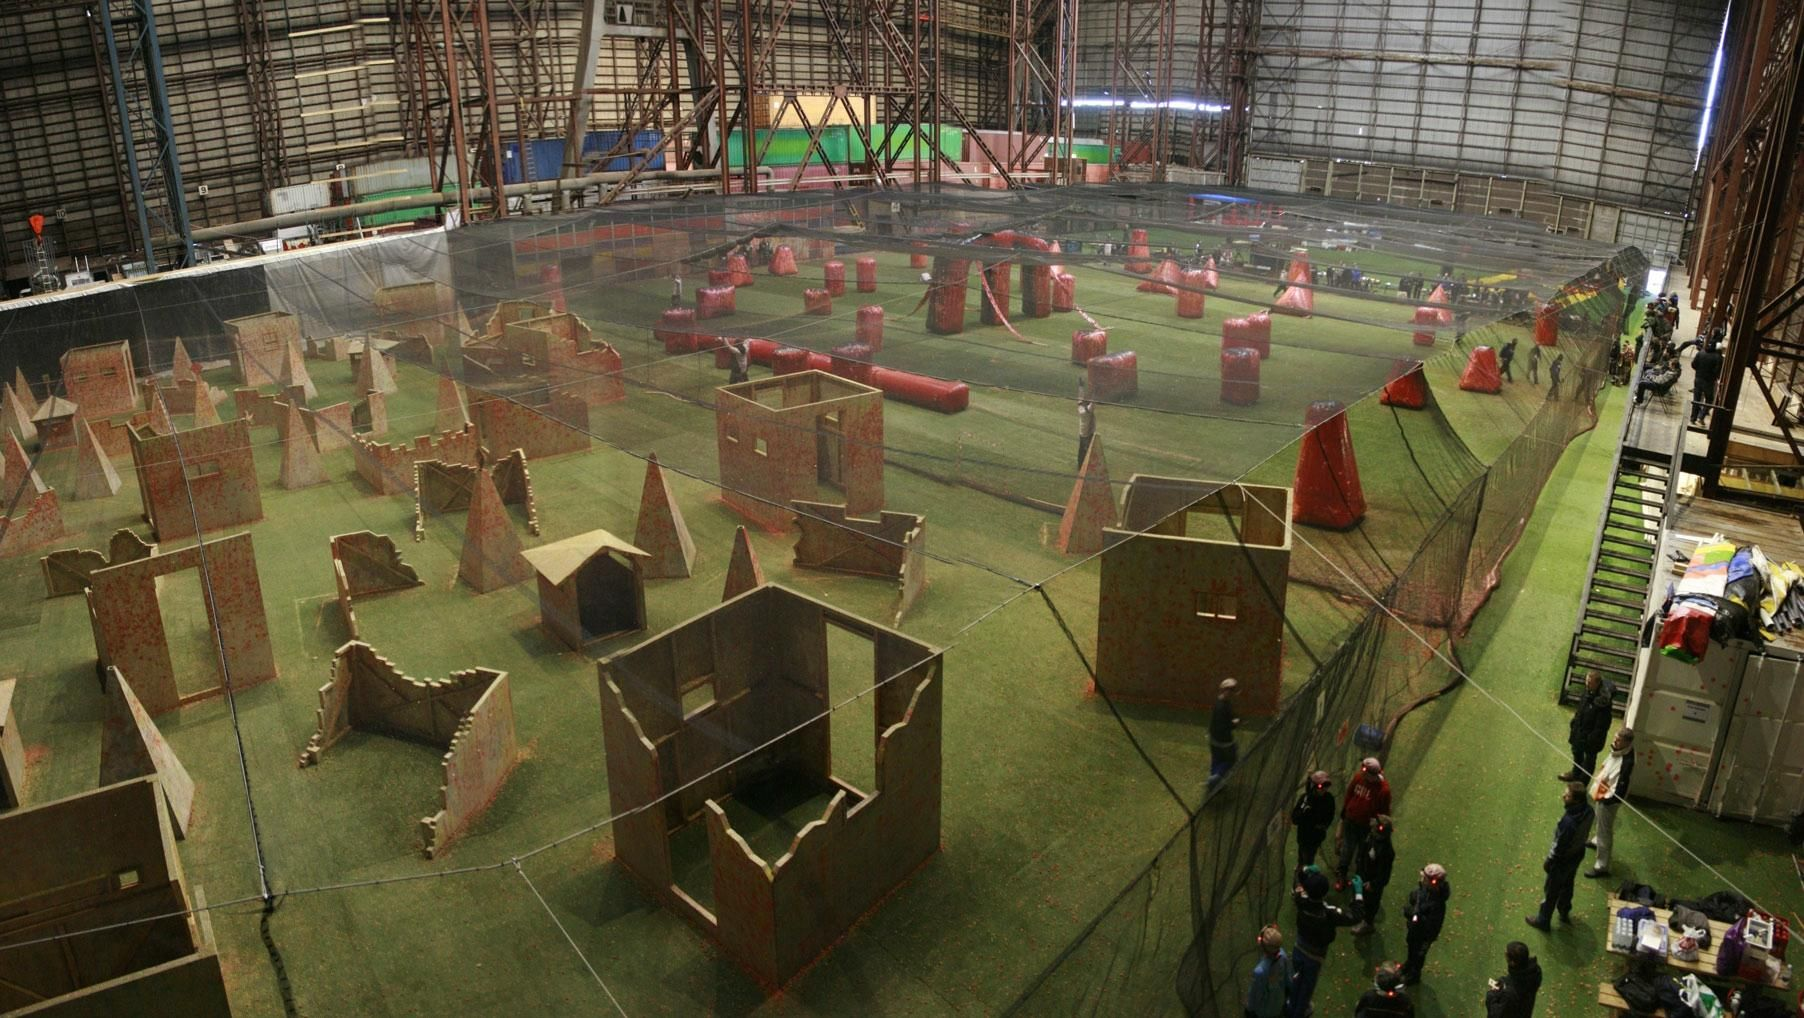 Paintball Arena Copenhagen See 7 Reviews Articles And